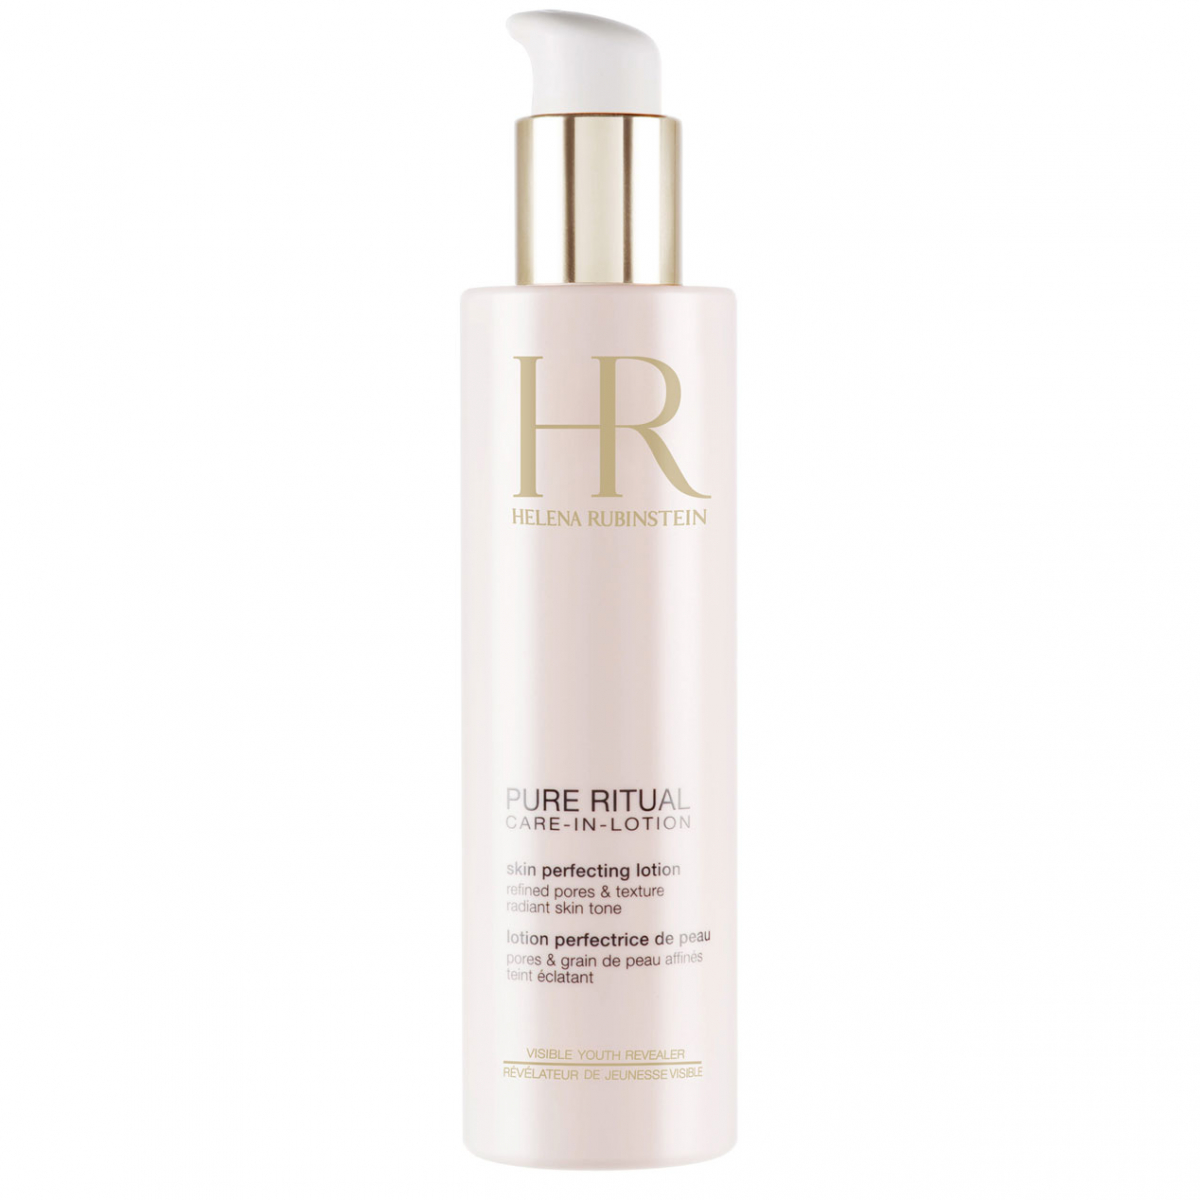 Helena Rubinstein Pure Ritual Care-In-Lotion (200ml)